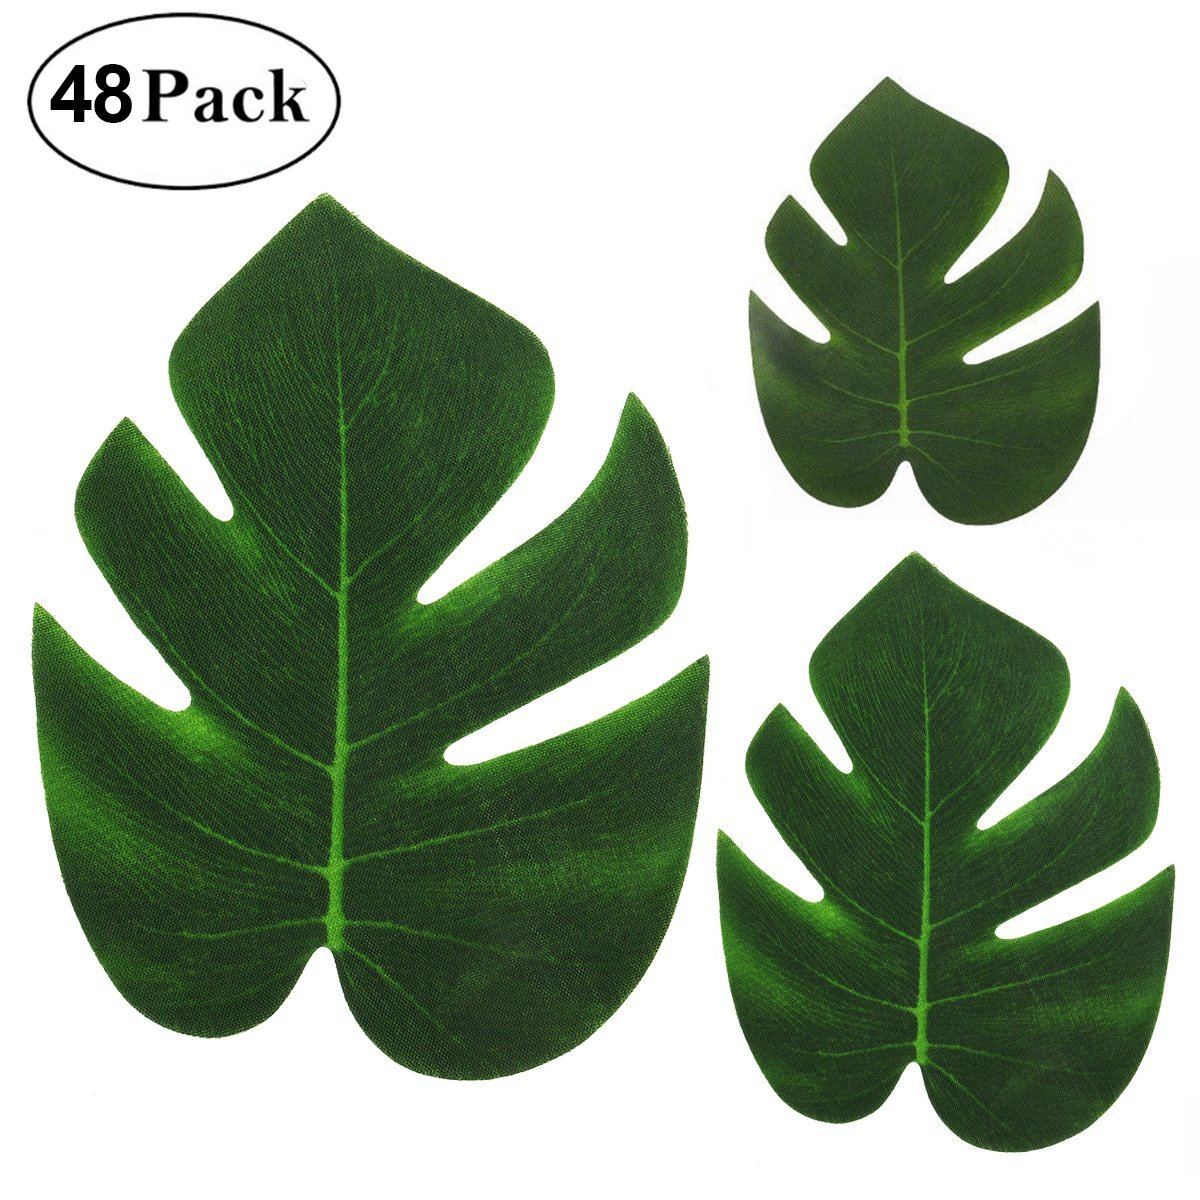 Cusfull 48Pcs Tropical Palm Leaves Plant Imitation Leaf-Waterproof Artificial Leaf Placemats-Hawaiian/Luau/Jungle Party Table Decorations by CUSFULL